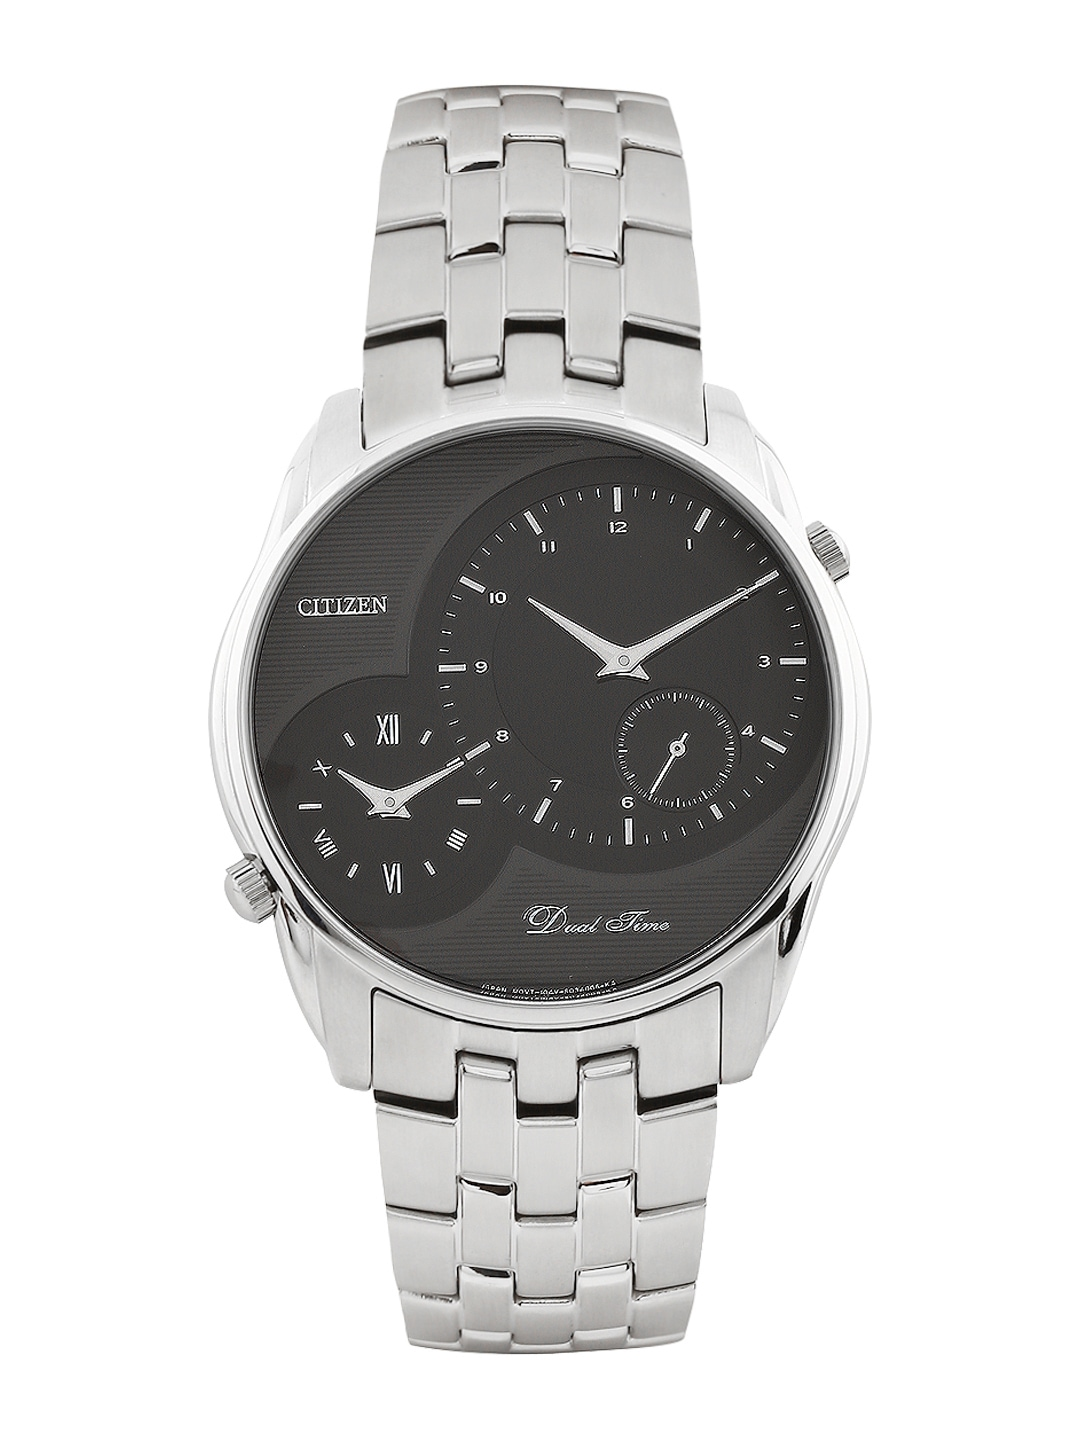 Citizen Men Black Dial Watch AO3005-56E